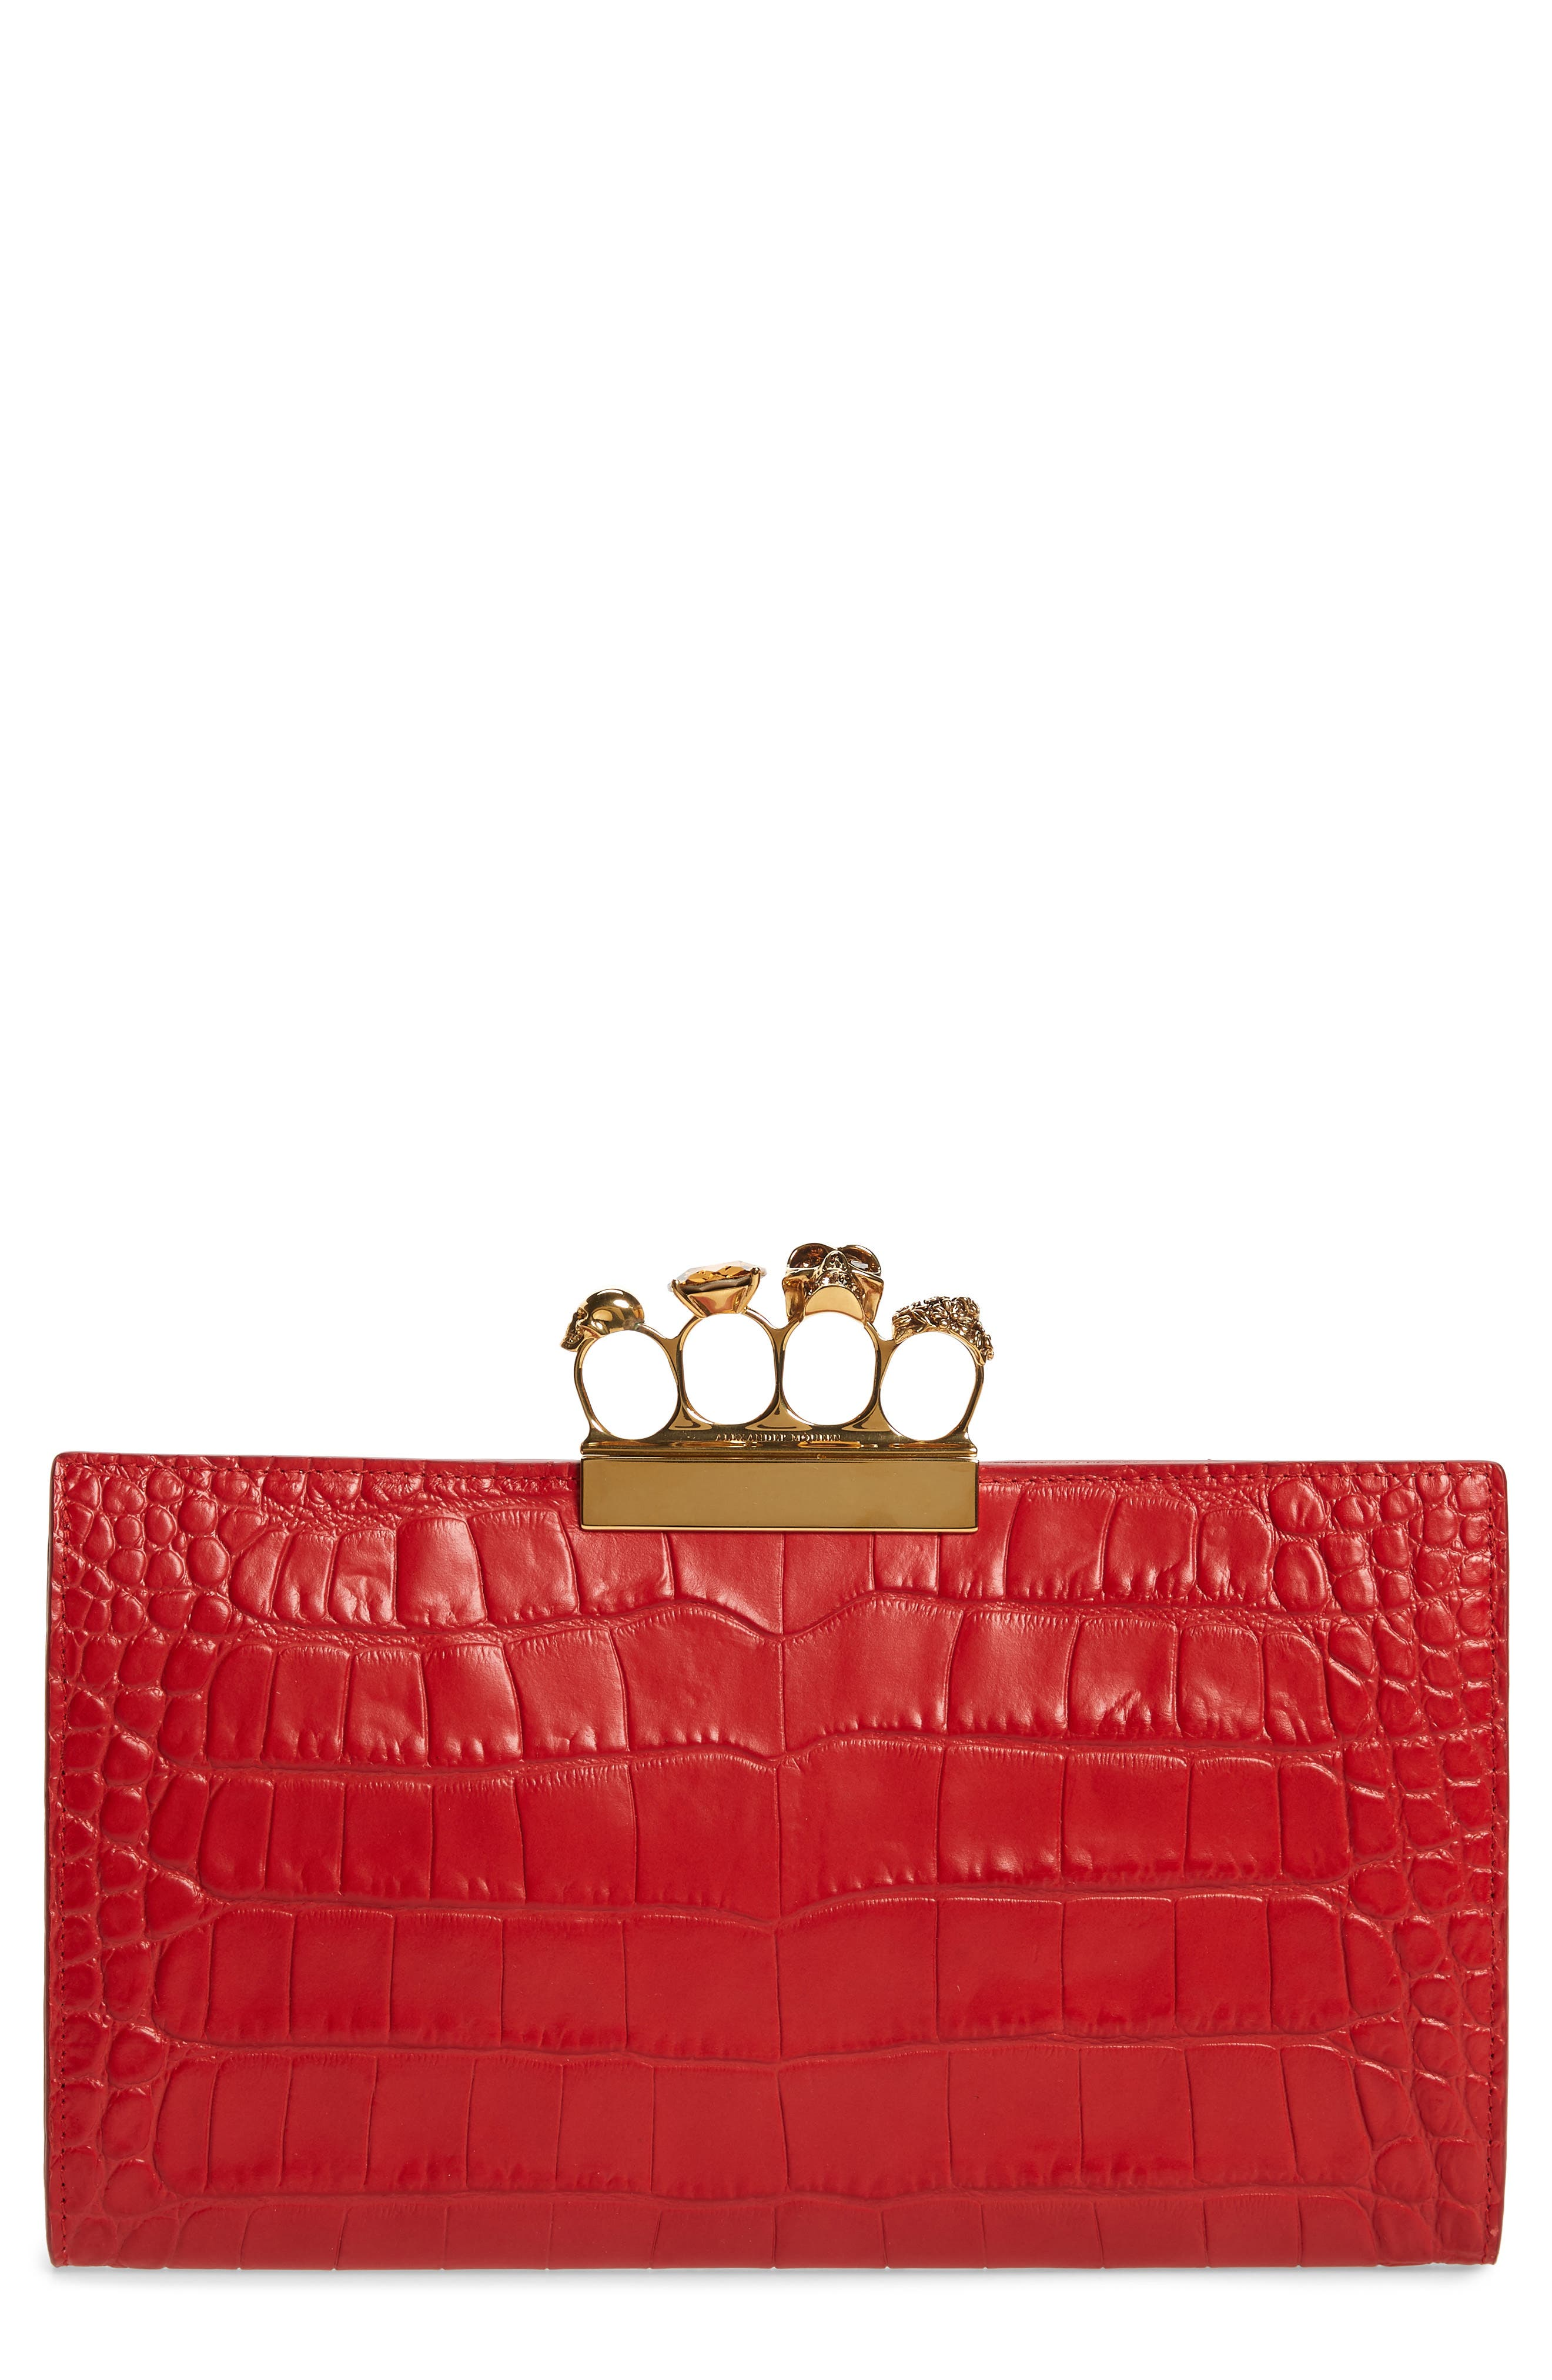 Croc Embossed Leather Knuckle Clutch,                             Main thumbnail 1, color,                             SCARLET RED